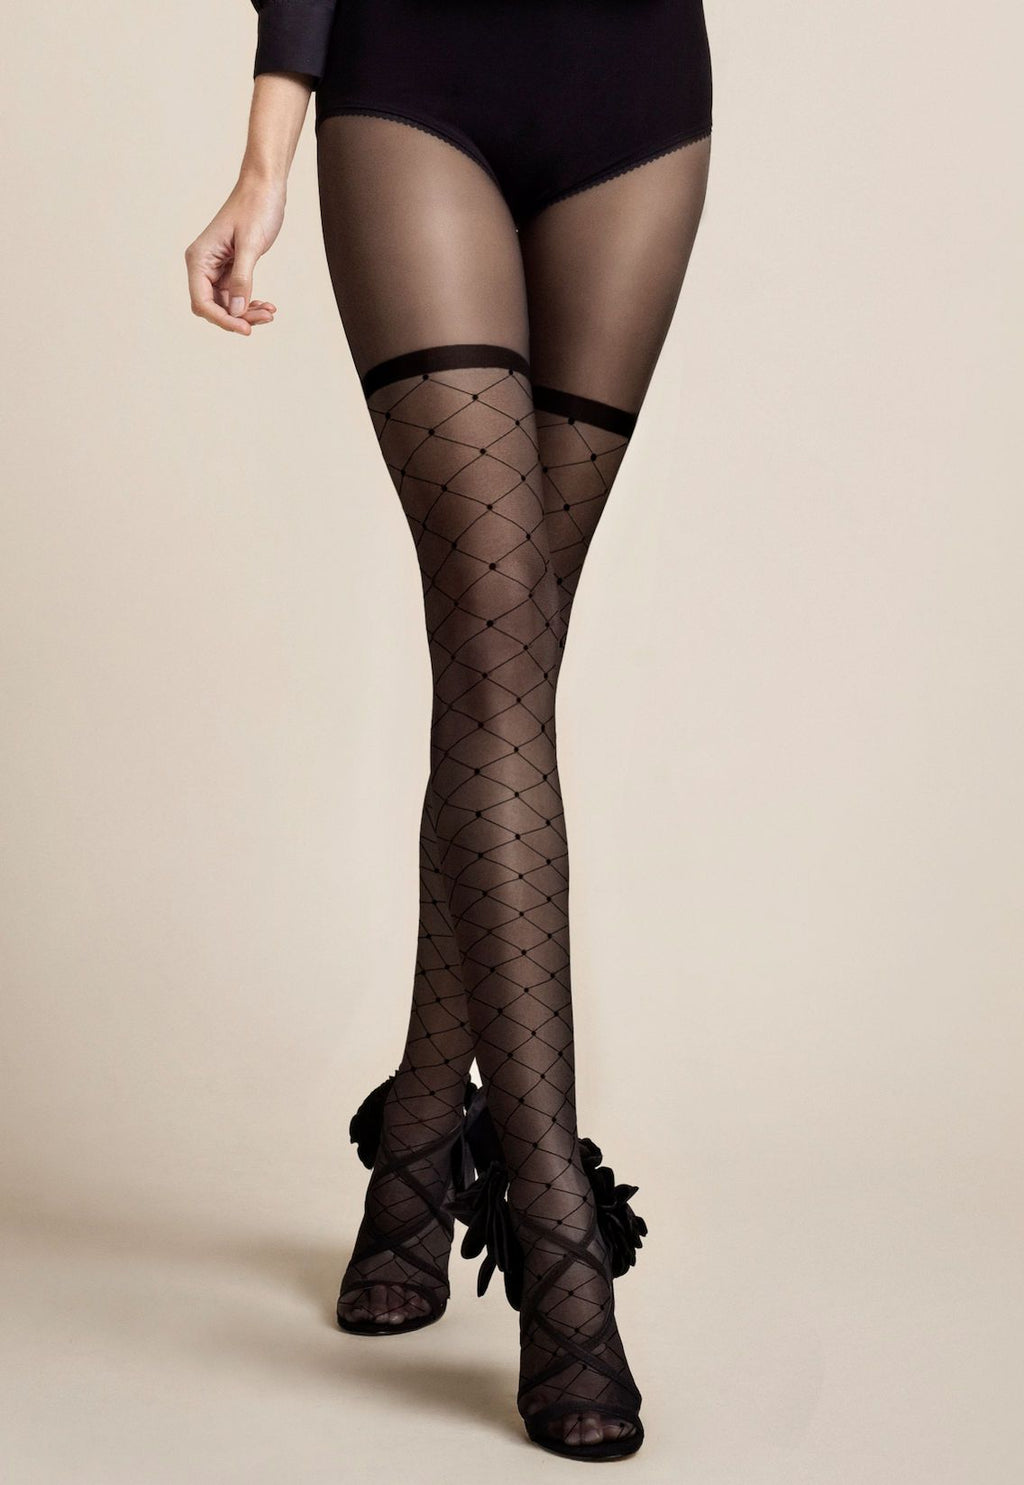 Patty Diamond Patterned Hold-Up Tights by Fiore